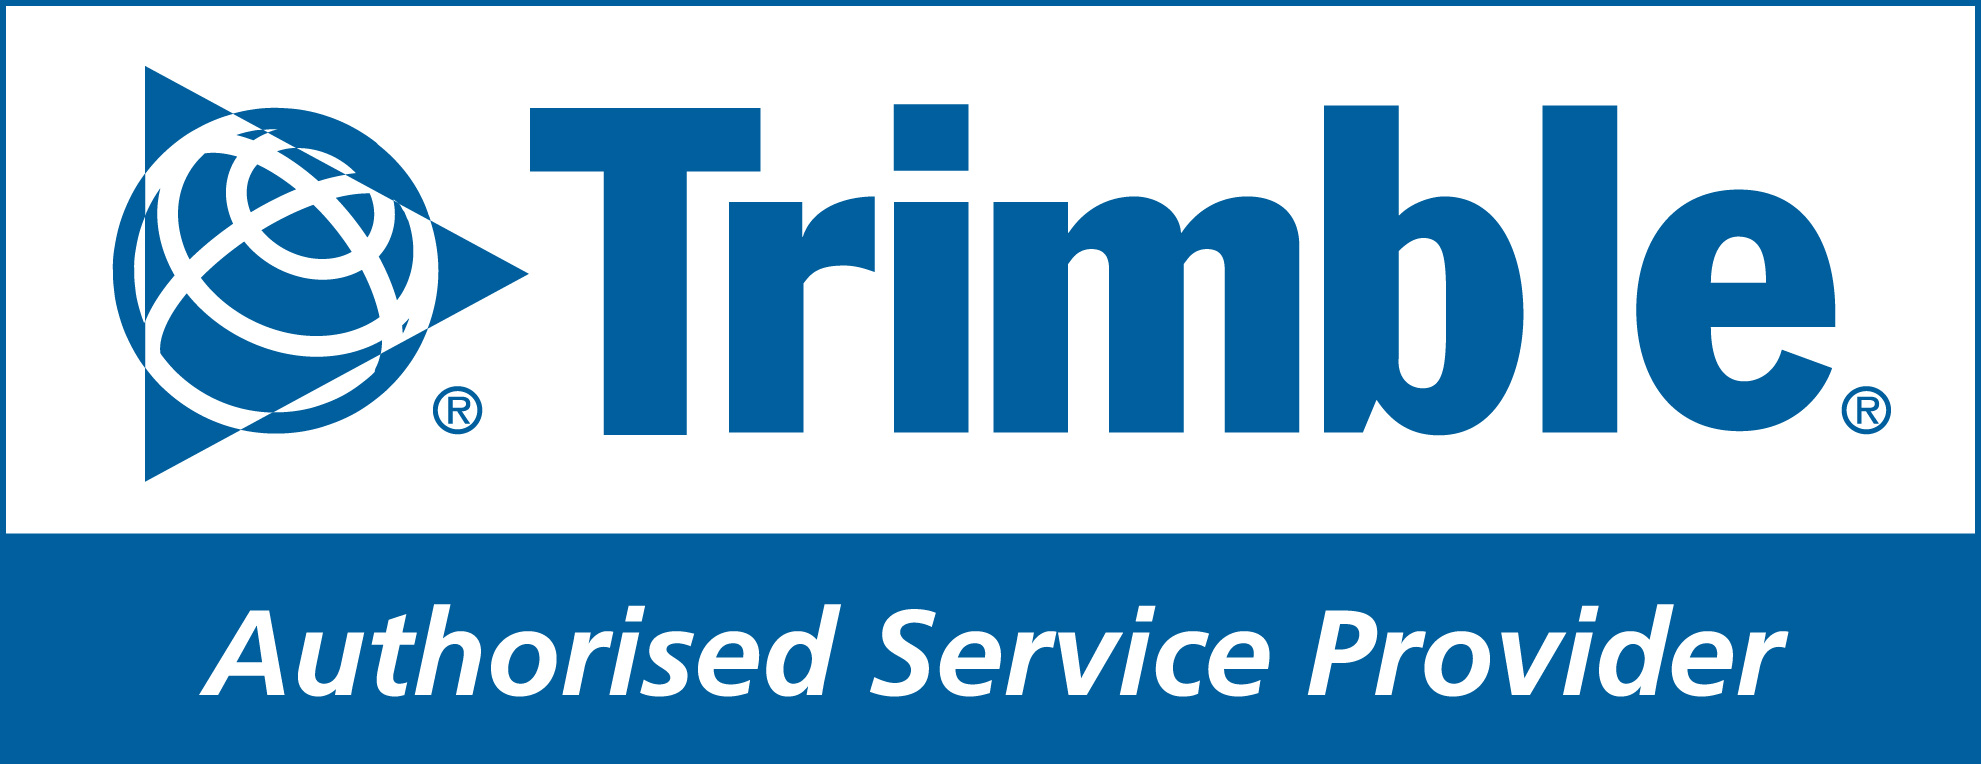 Trimble Authorized Service Provider - UK English_blue_logo_RGB (1).jpg